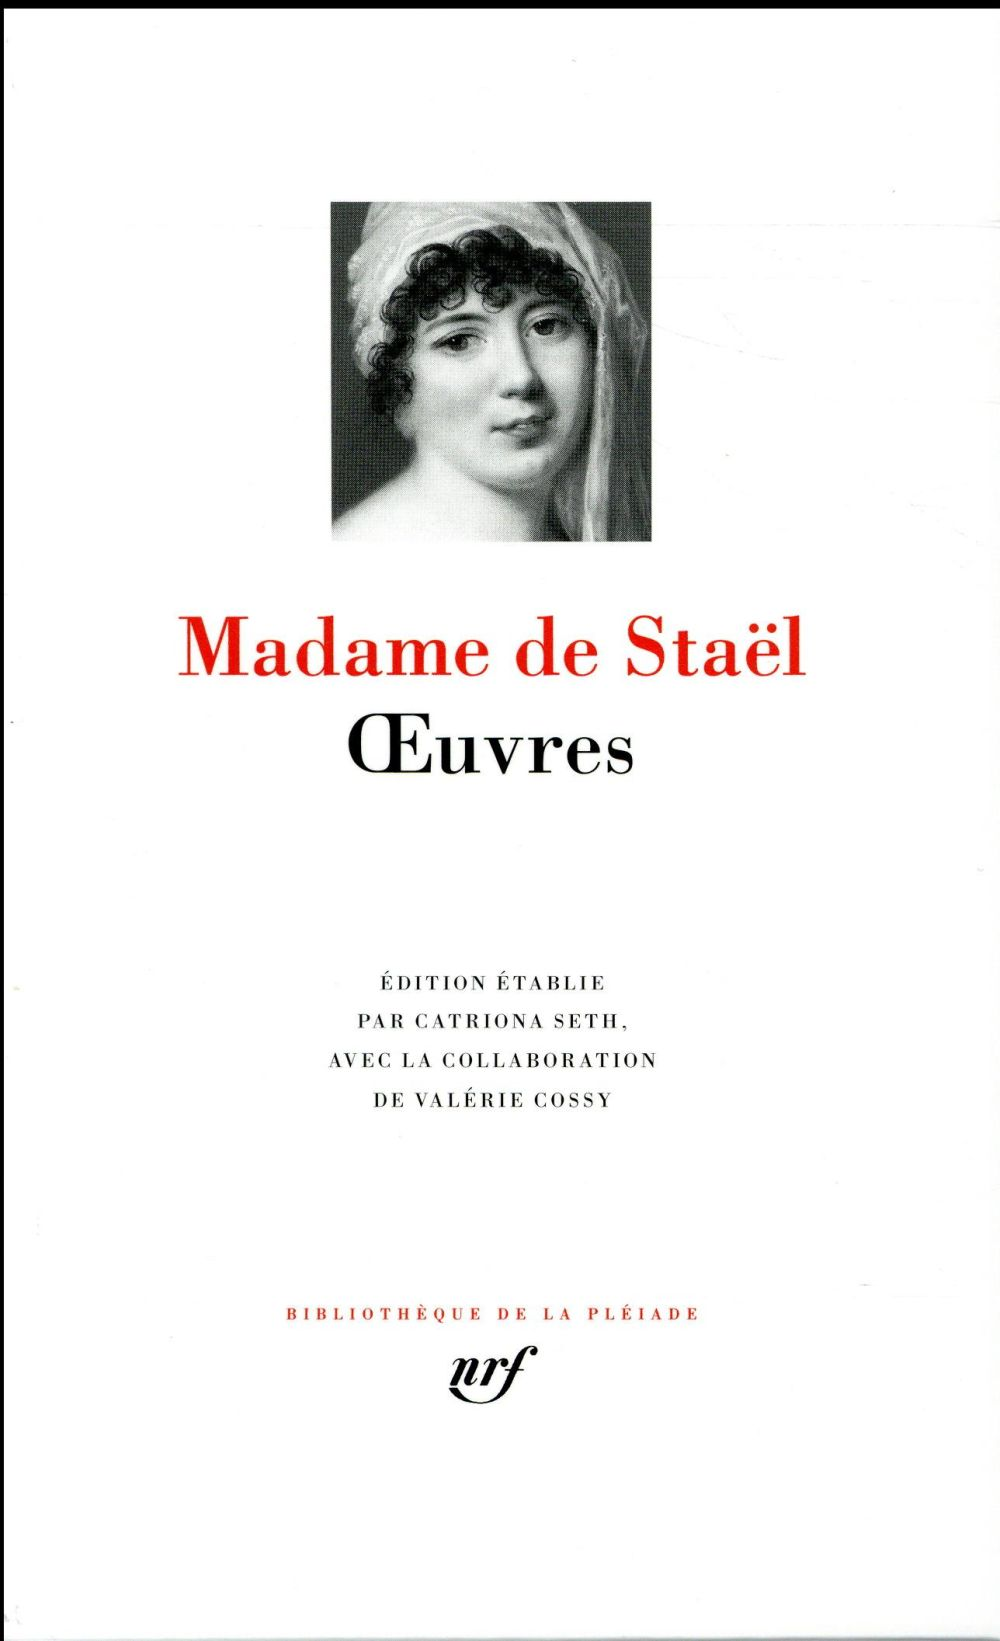 OEUVRES STAEL MADAME DE GALLIMARD